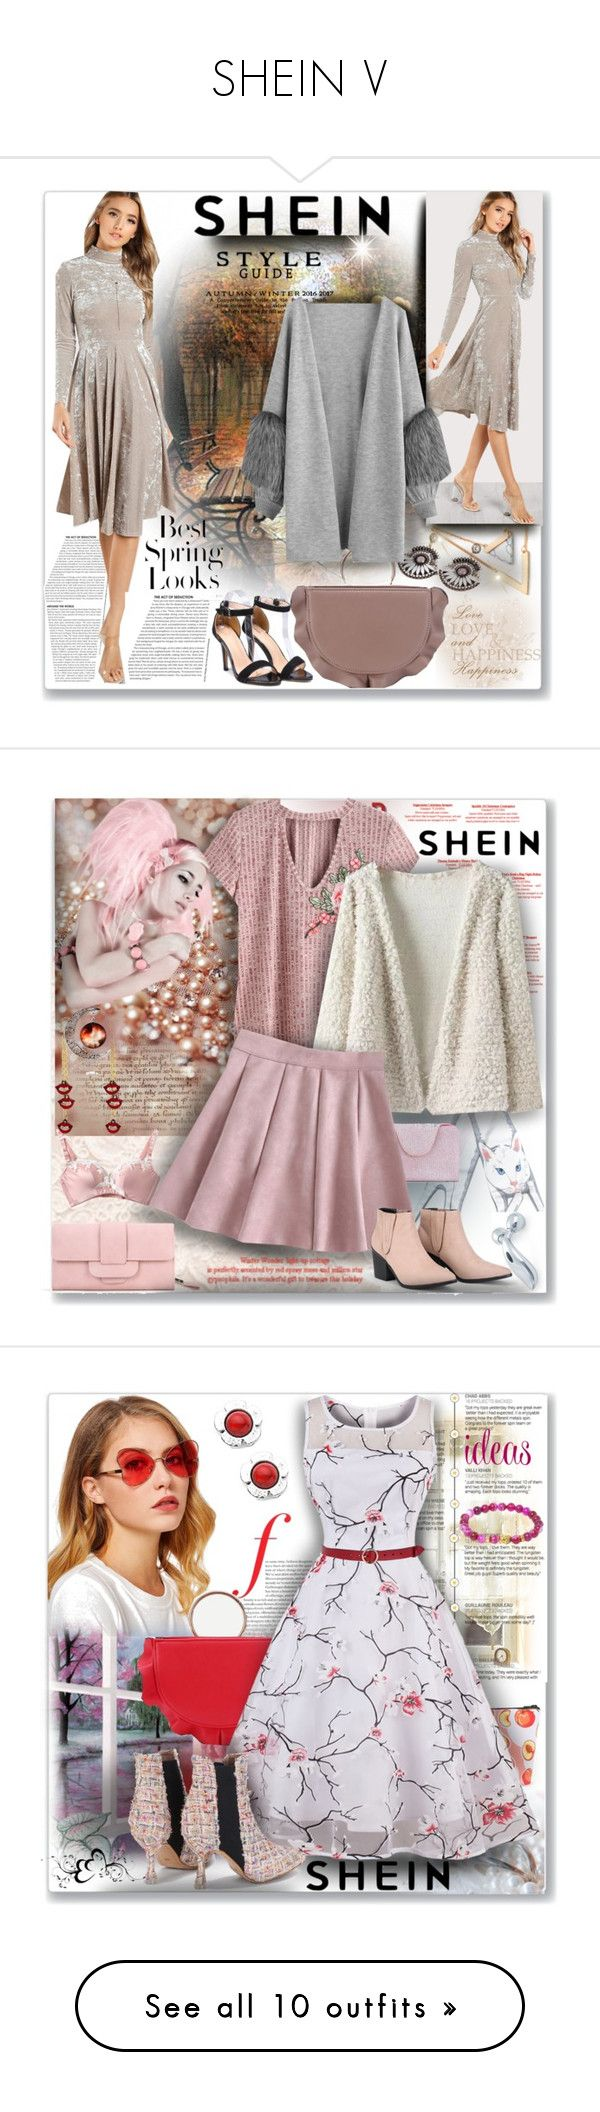 """SHEIN V"" by ane-twist ❤ liked on Polyvore featuring shein, H&M, Elie Saab, Pierre Hardy, Mor, Under Armour and canvas"